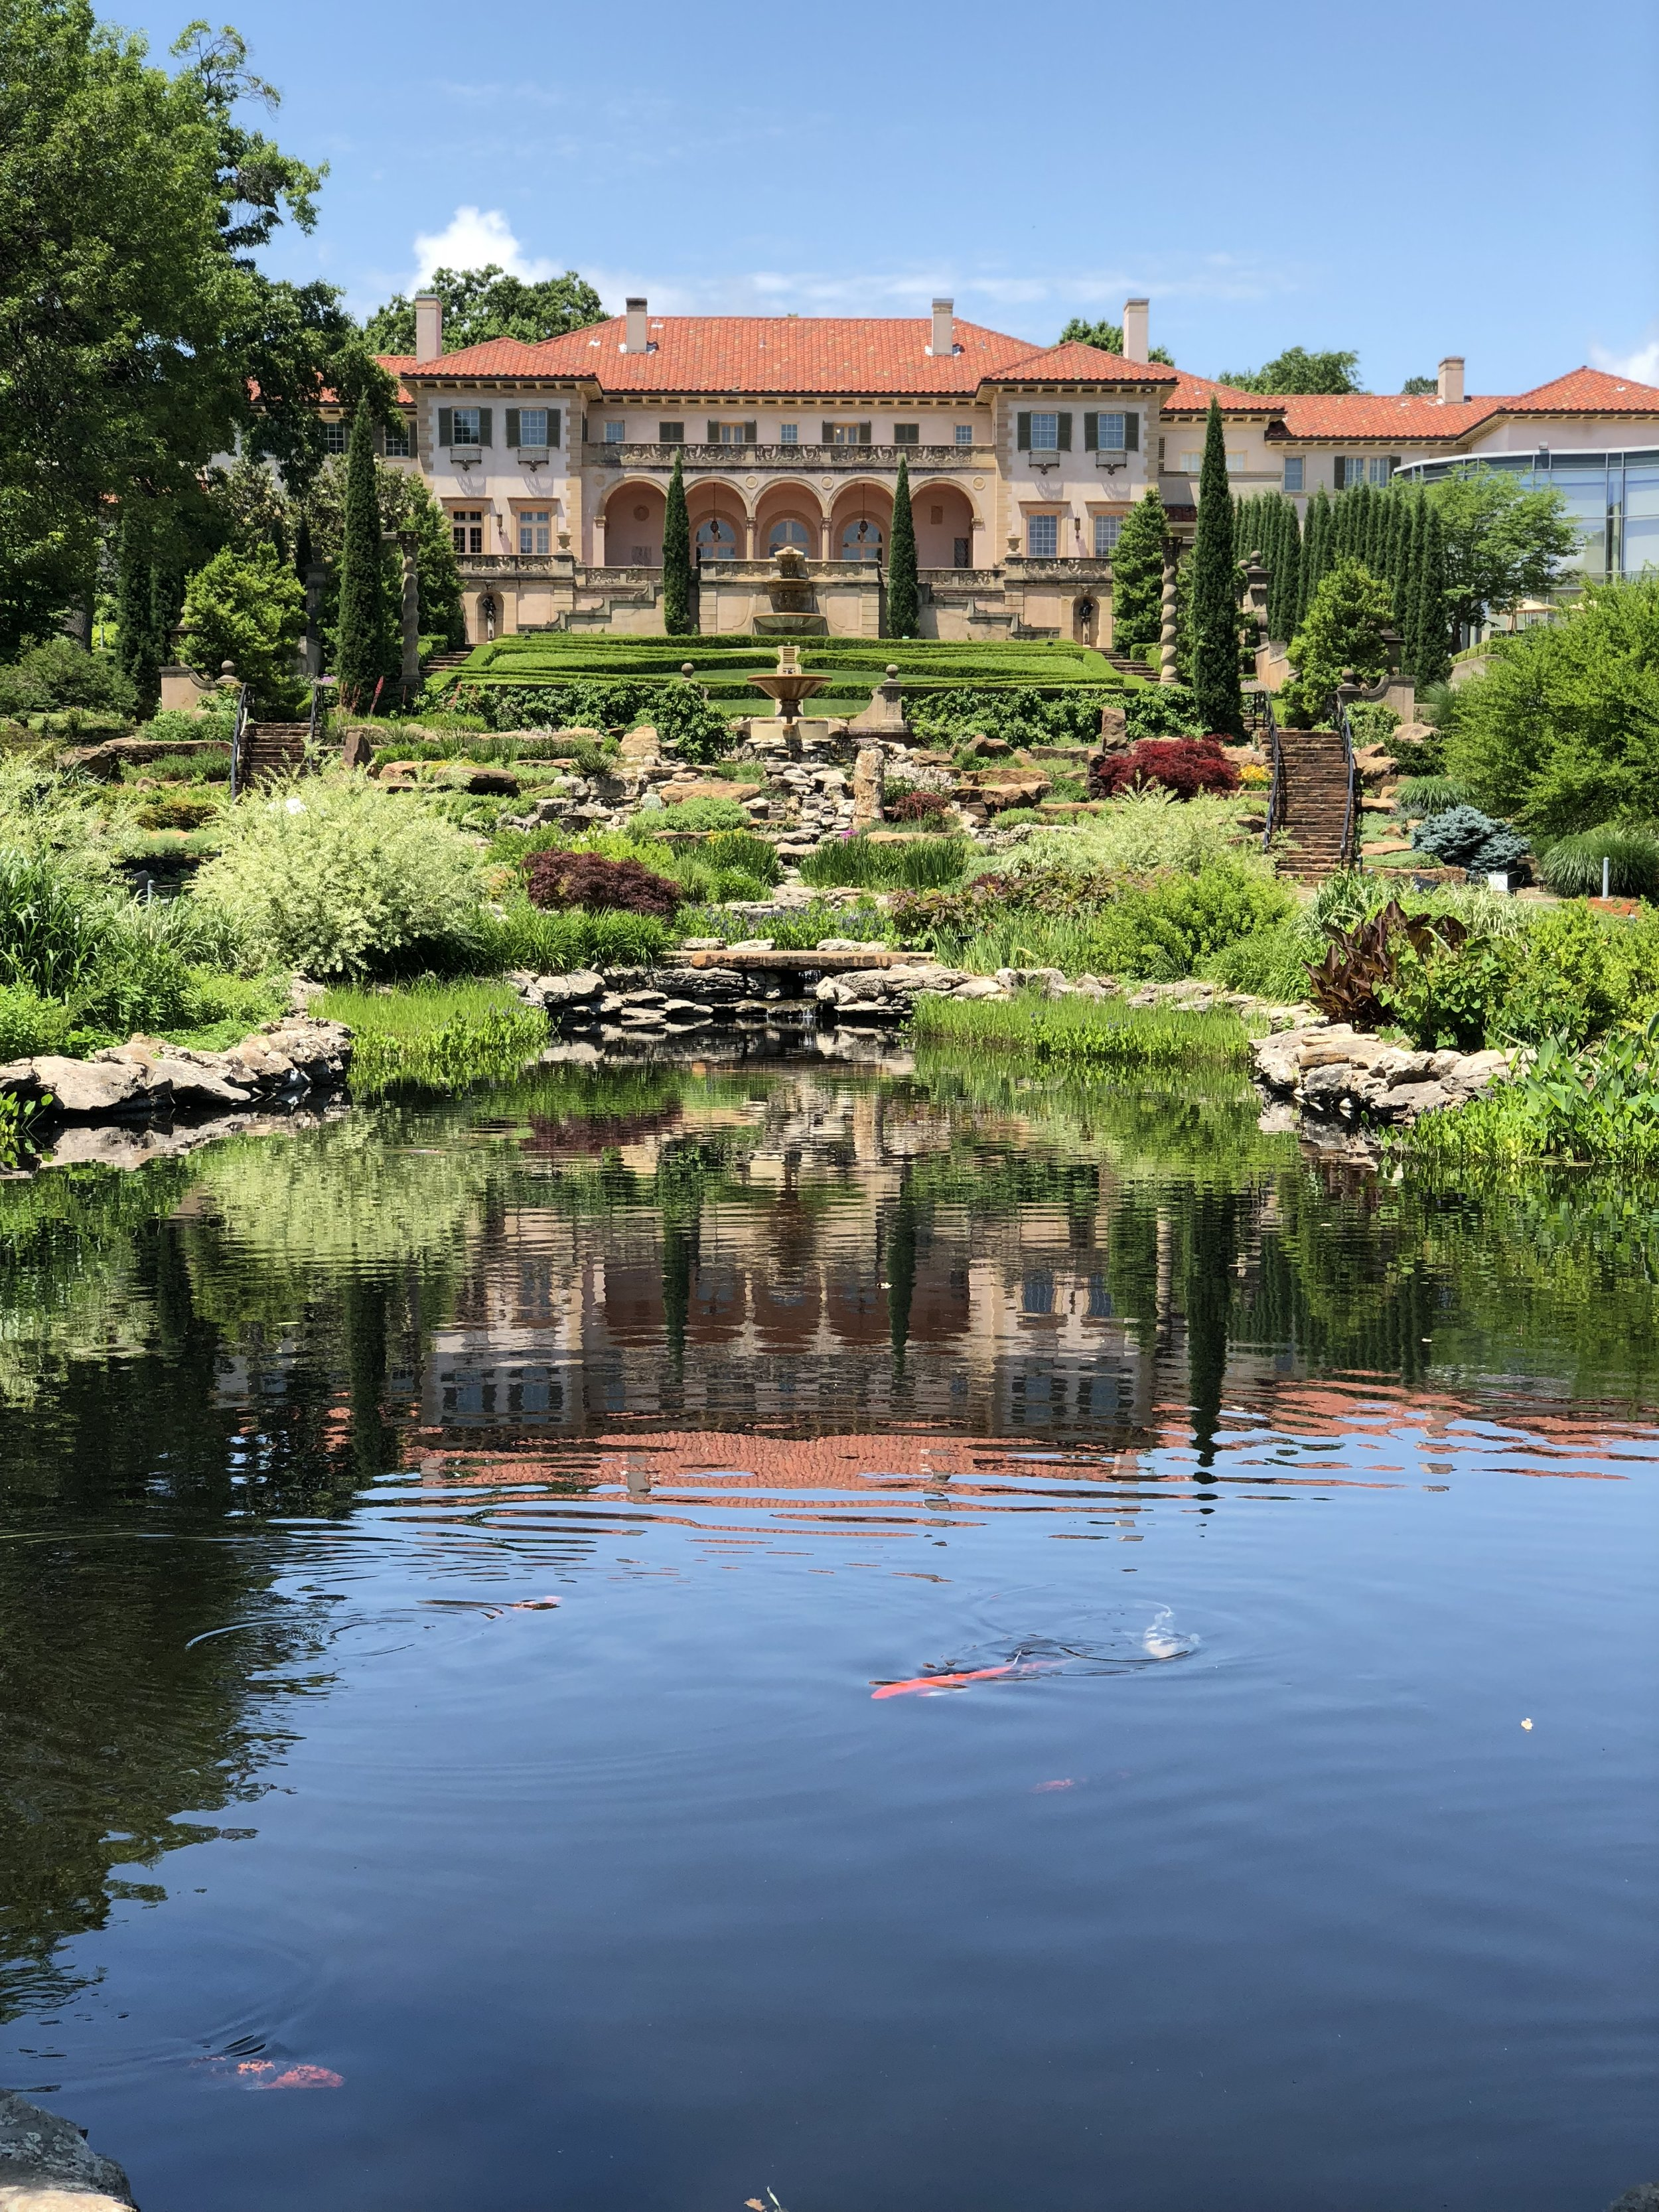 The gardens at Philbrook are basically 25 acres of lush beauty.  There are several sculptures and it's just a place you want to visit over and over again.